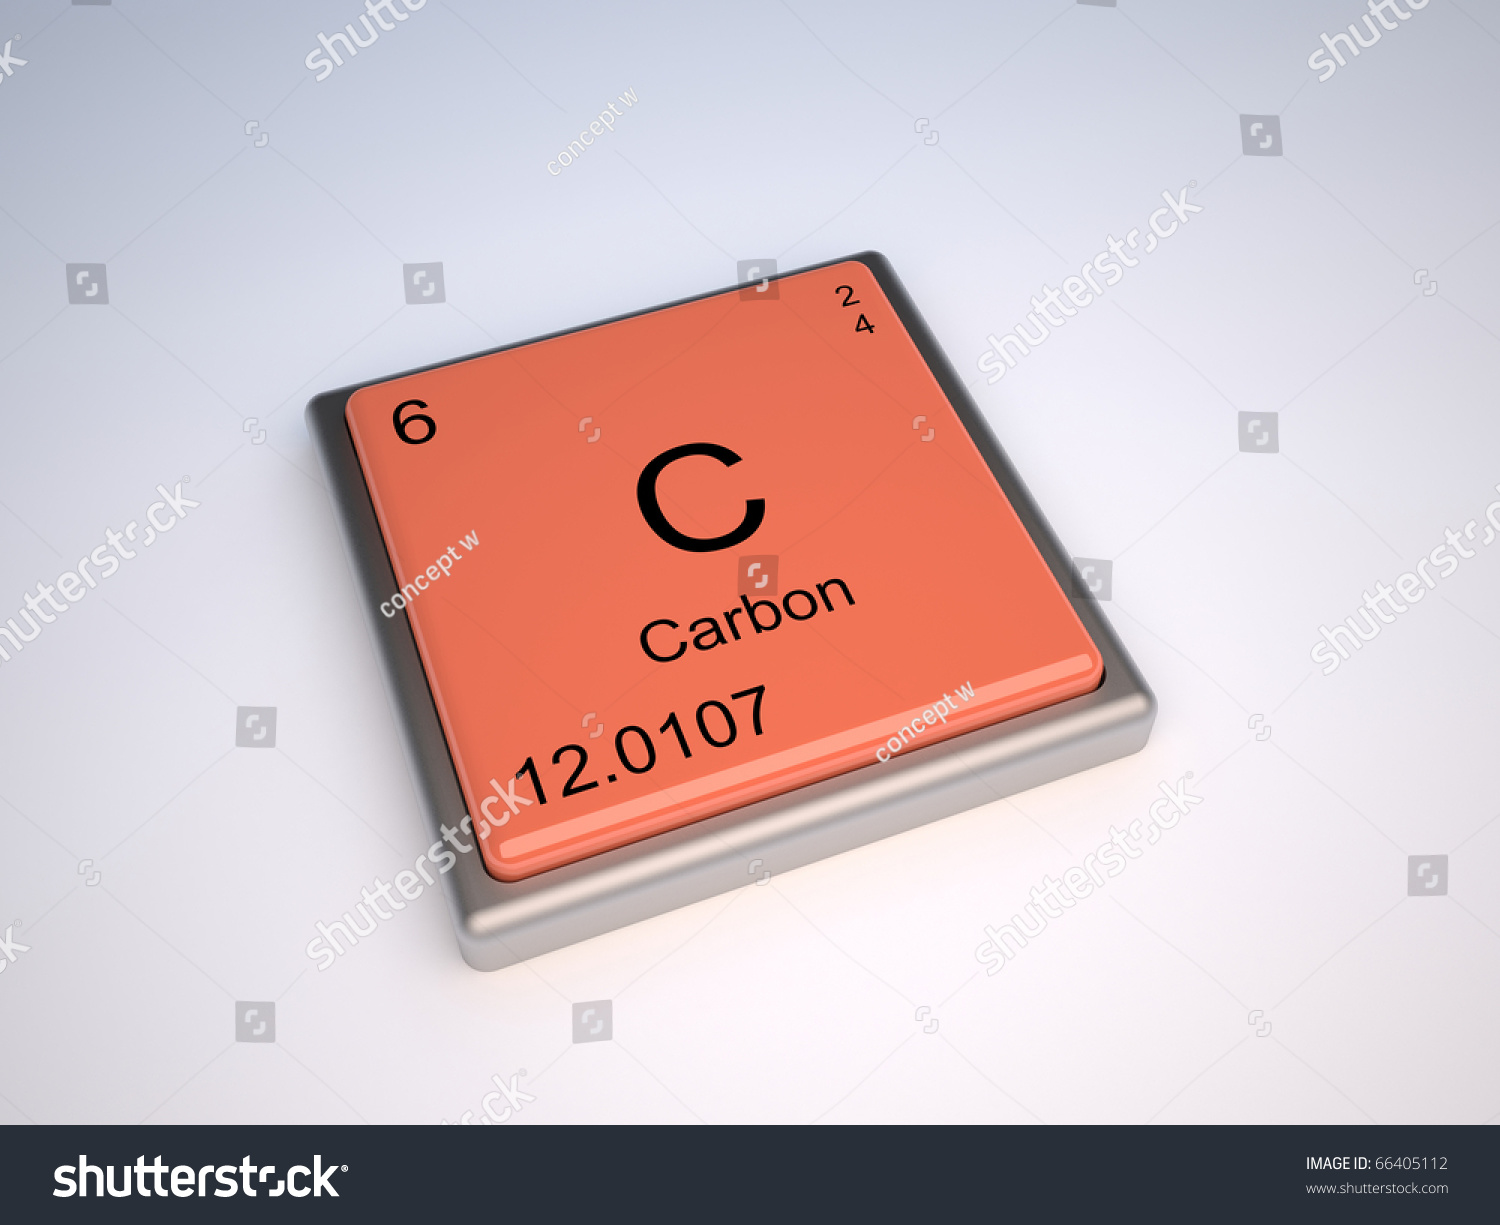 Carbon chemical element periodic table symbol stock illustration carbon chemical element of periodic table with symbol c gamestrikefo Gallery